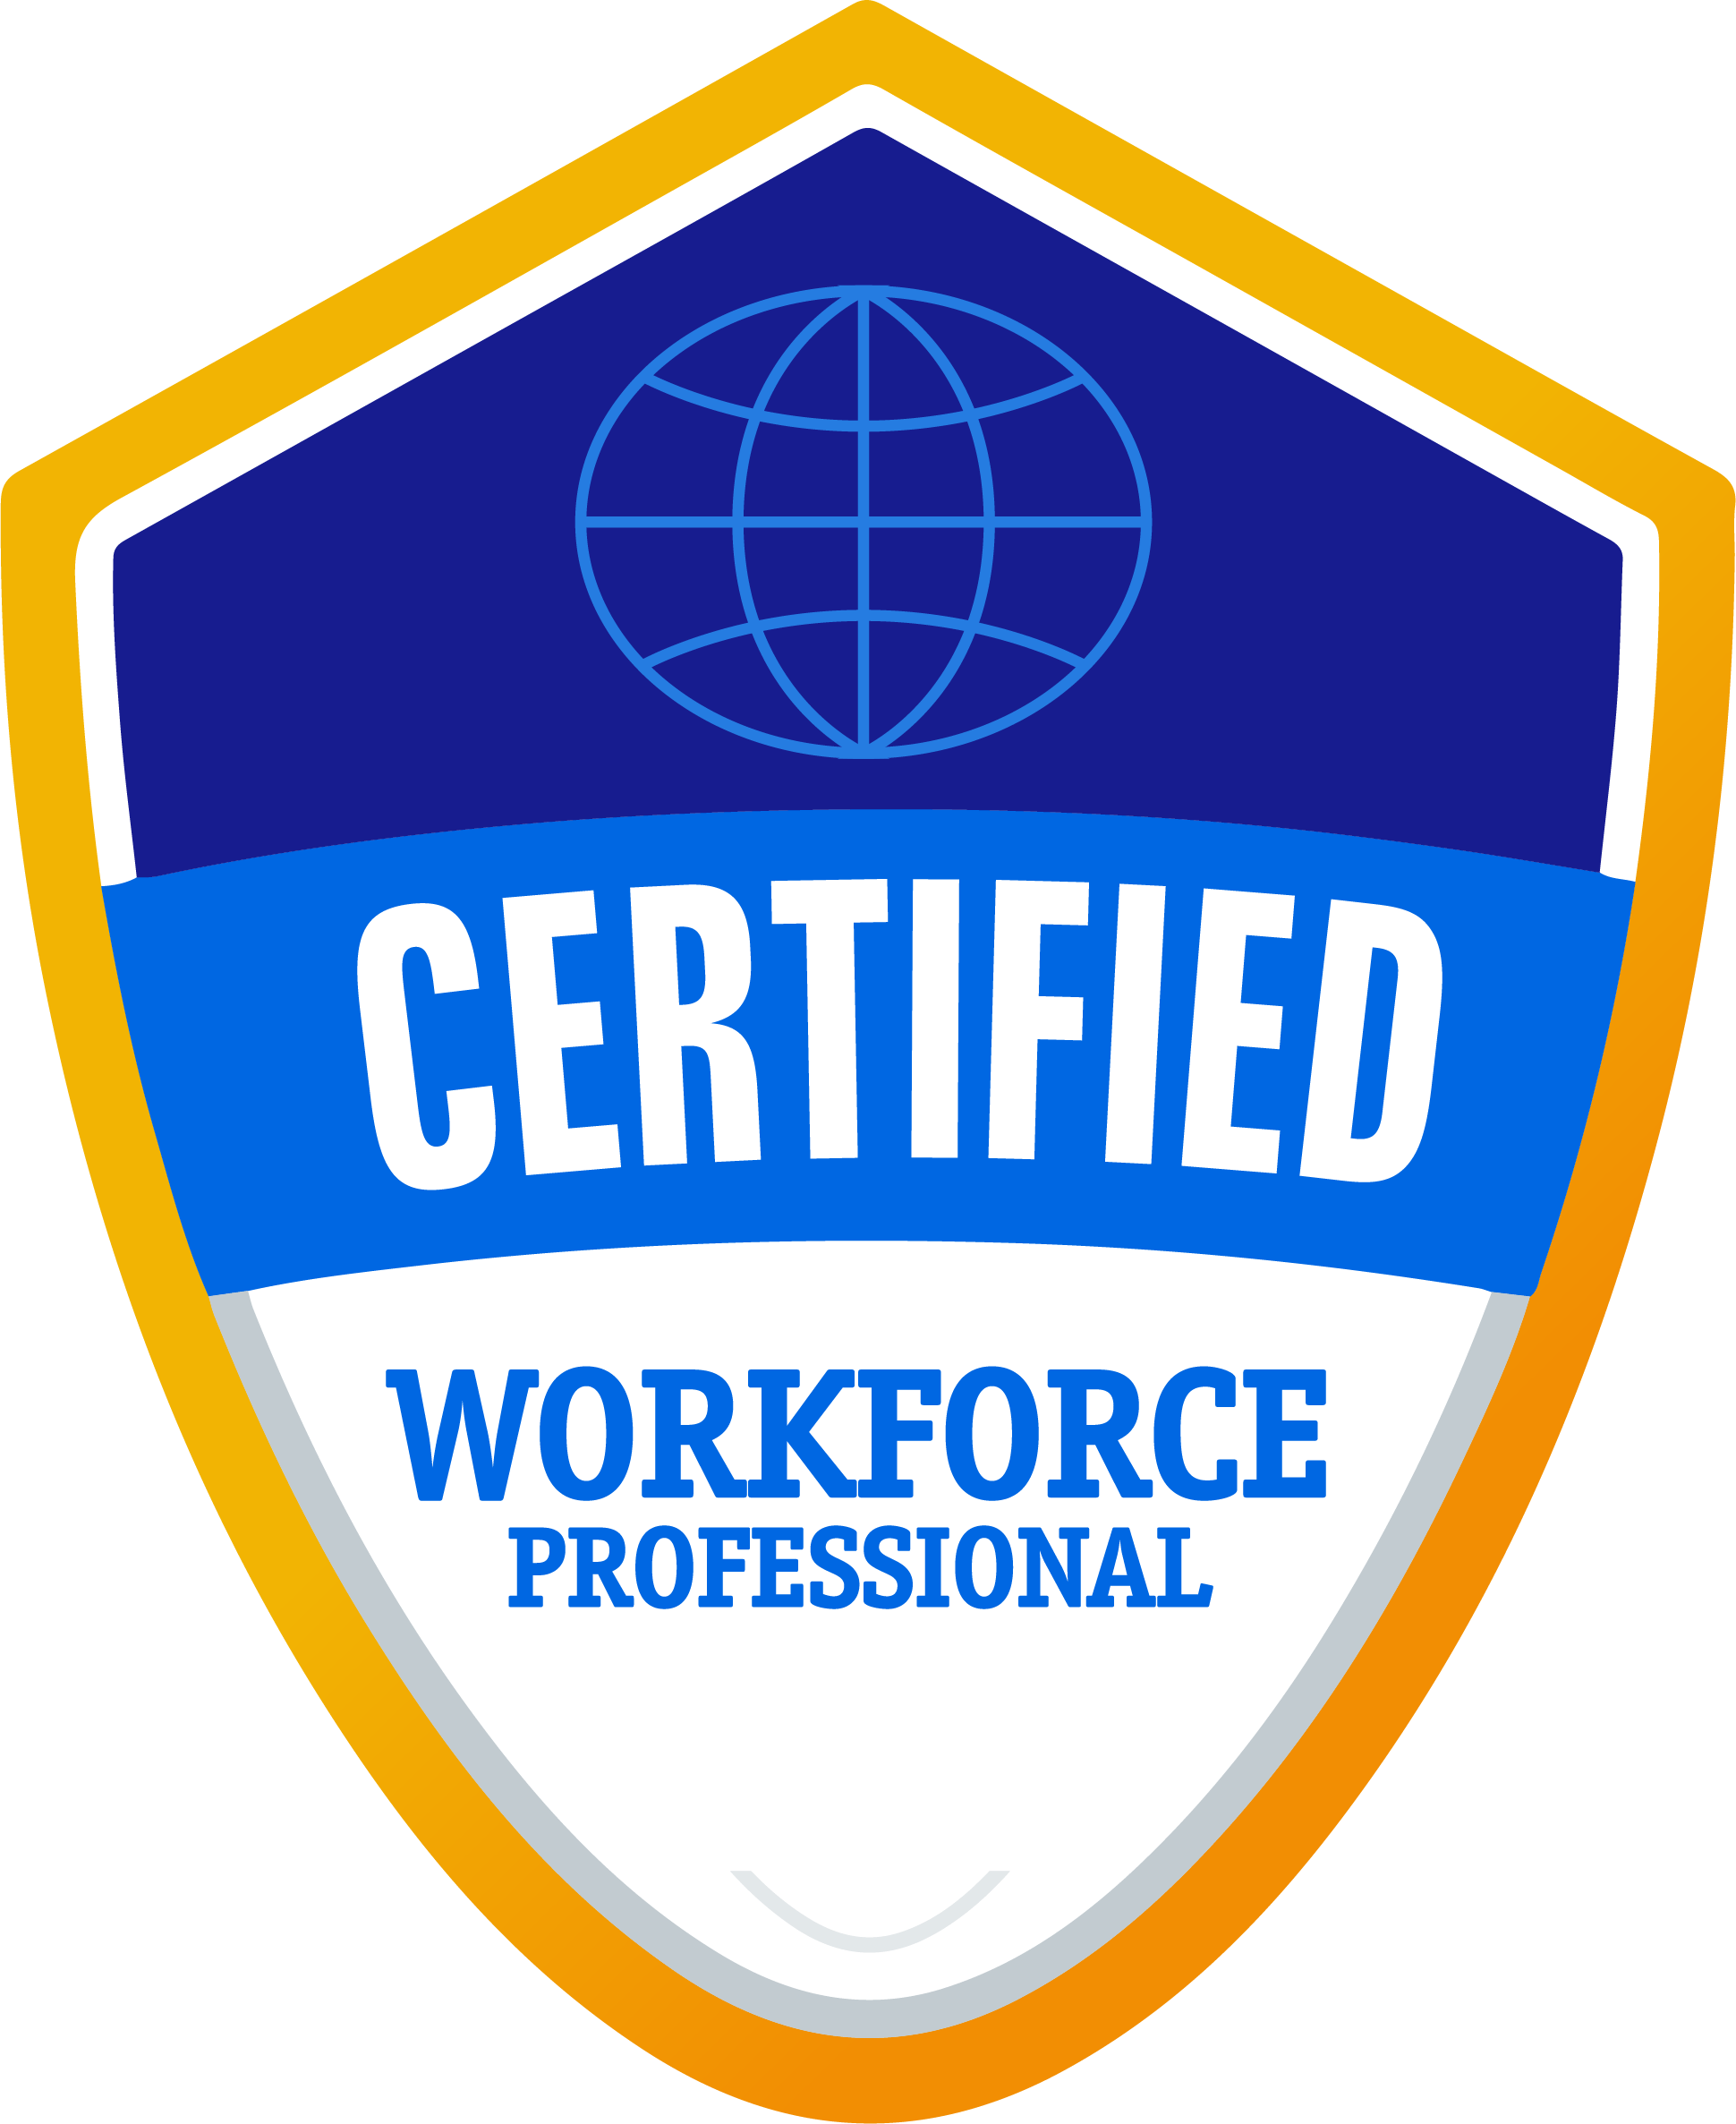 IAWP Certified Workforce Professional